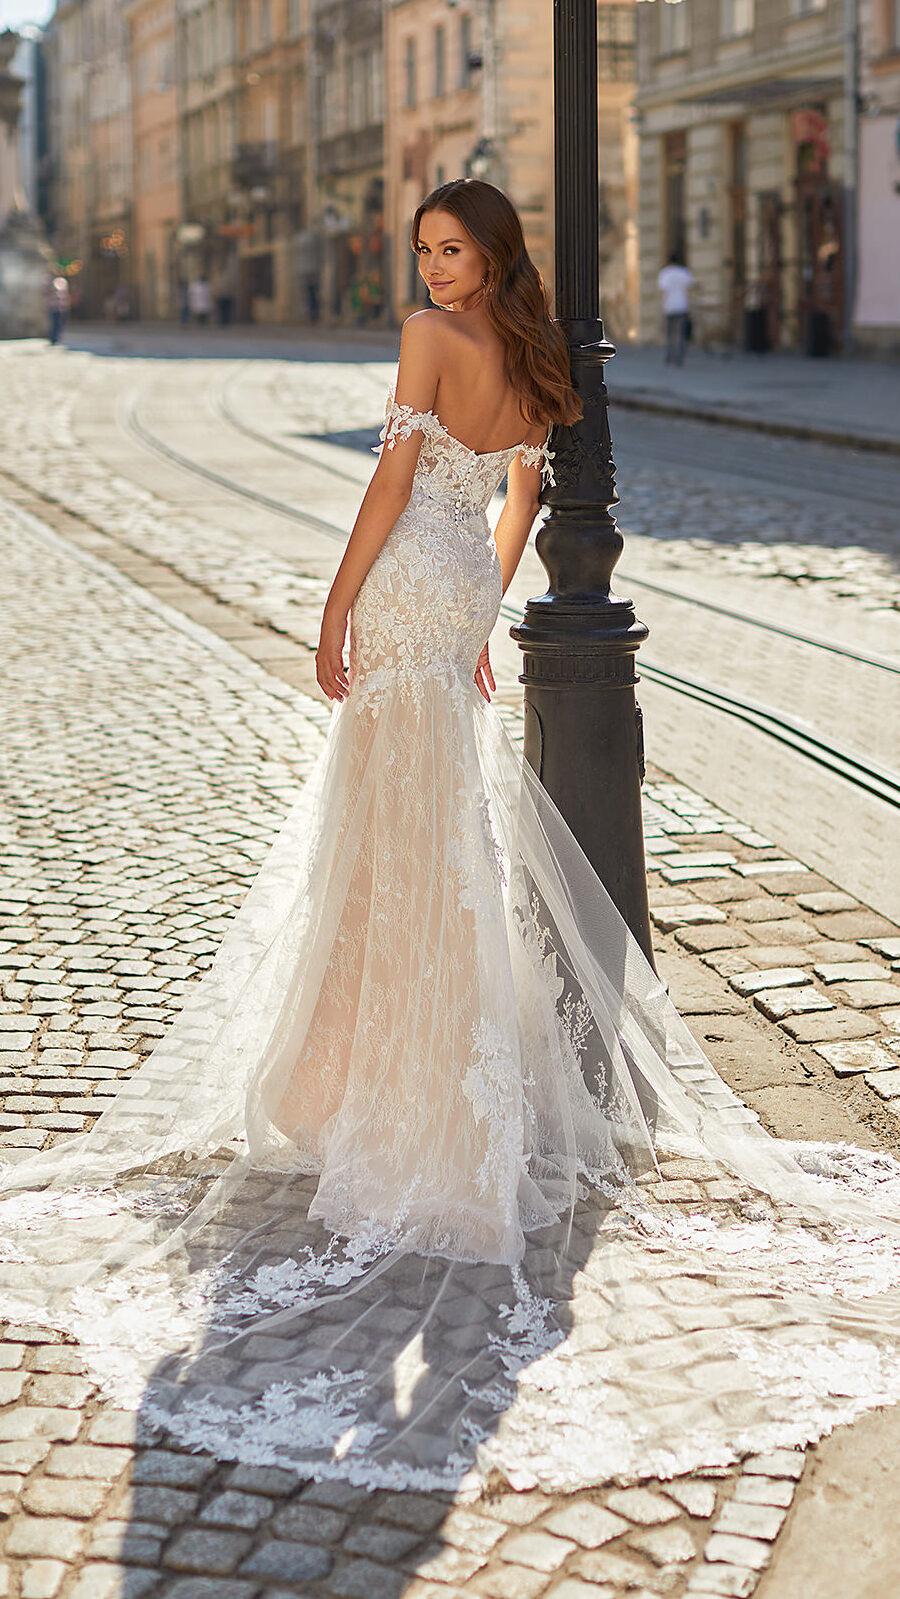 Designer Wedding Dresses by Moonlight Couture 2022 Bridal Collection - H1483